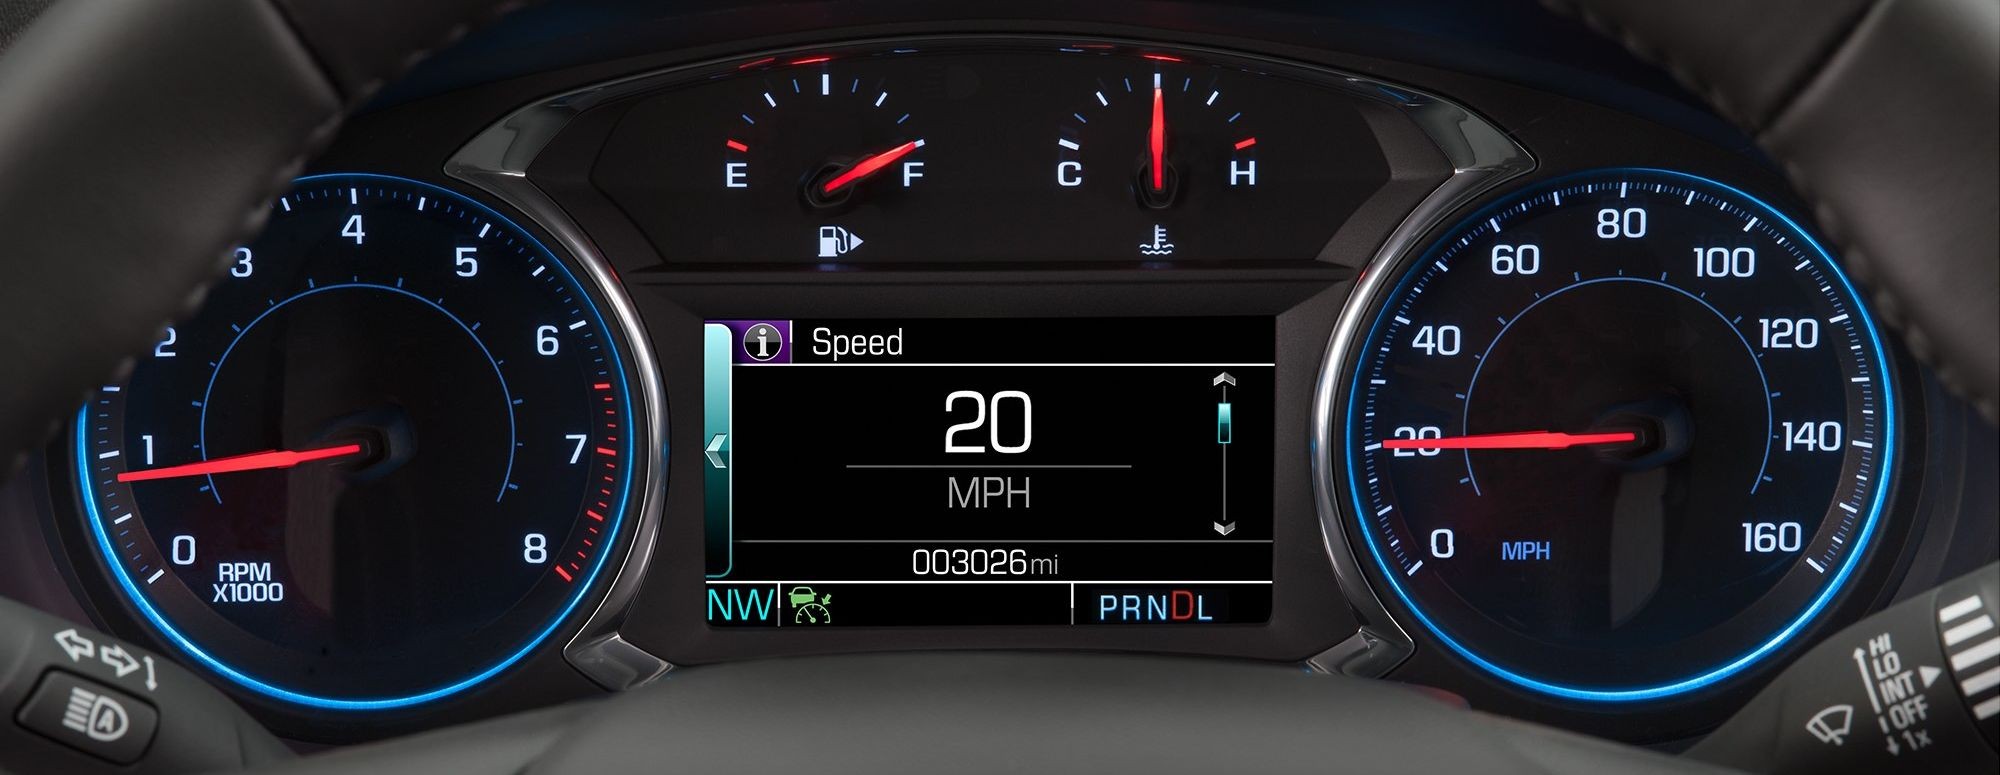 Sporty Design on the Malibu's Dash